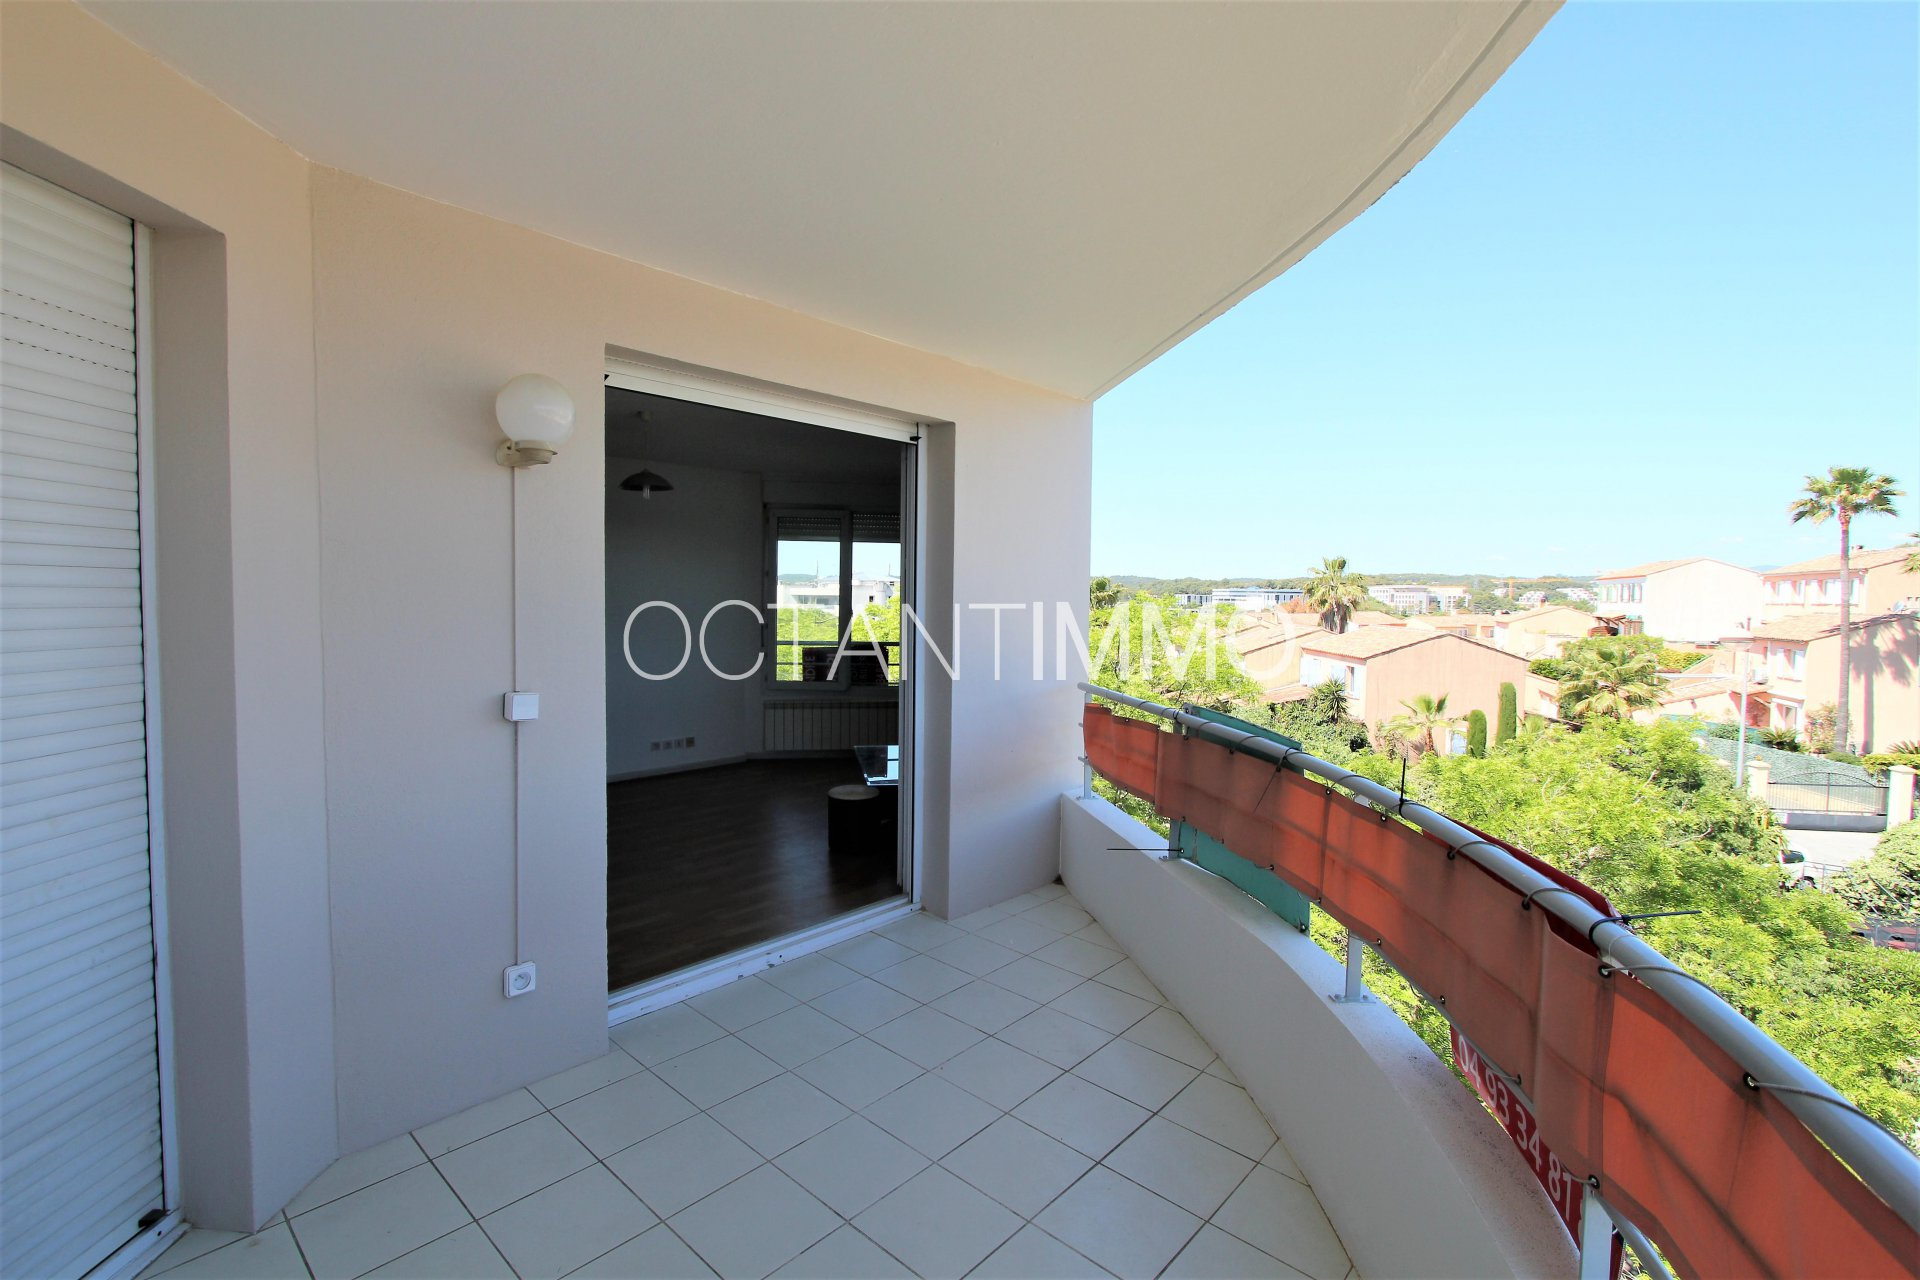 BIOT - Exclusive 2 rooms apartment on the top floor